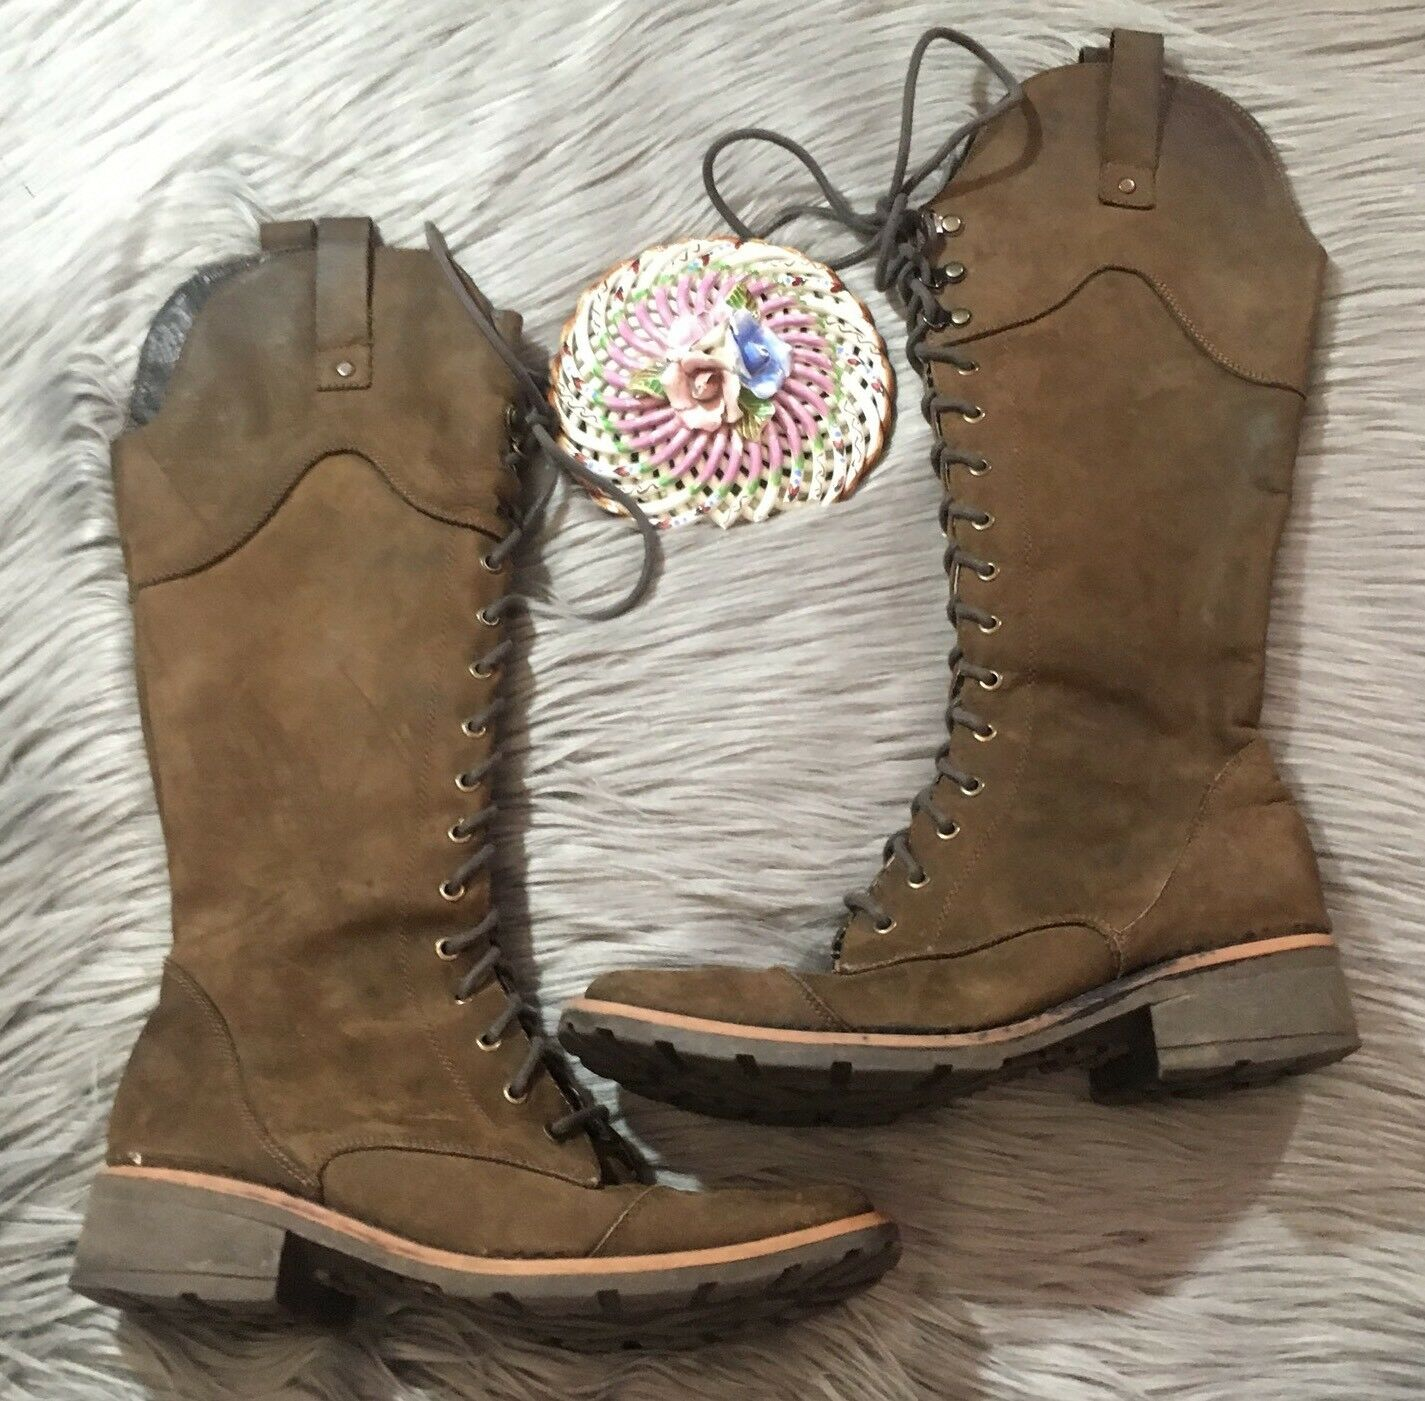 Chabi Knee High Distressed Leather Boots Sz 8 Brown Lace Up Riding Boho